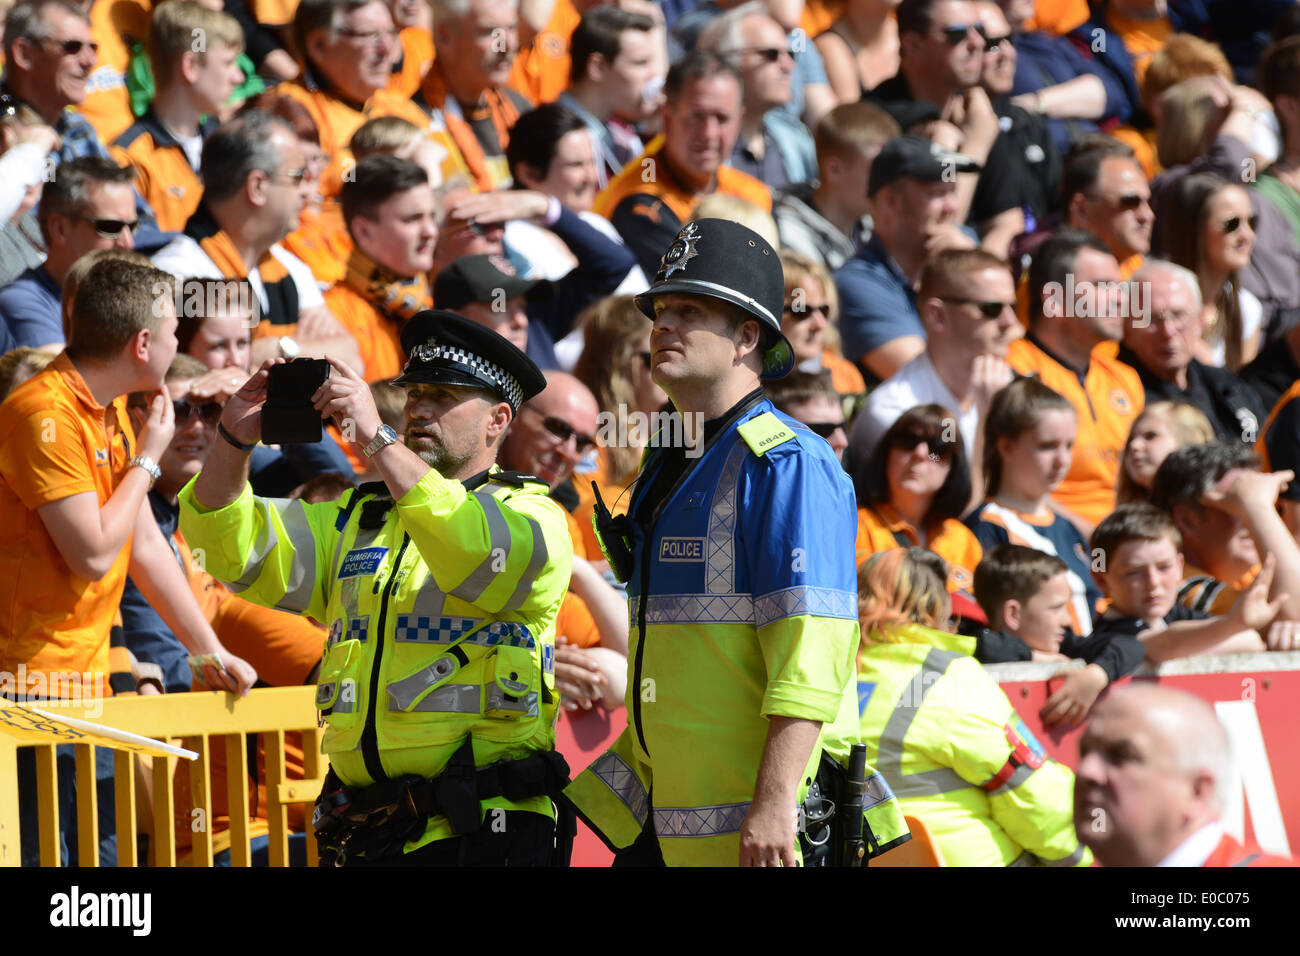 Police officer officers policing football match Uk - Stock Image